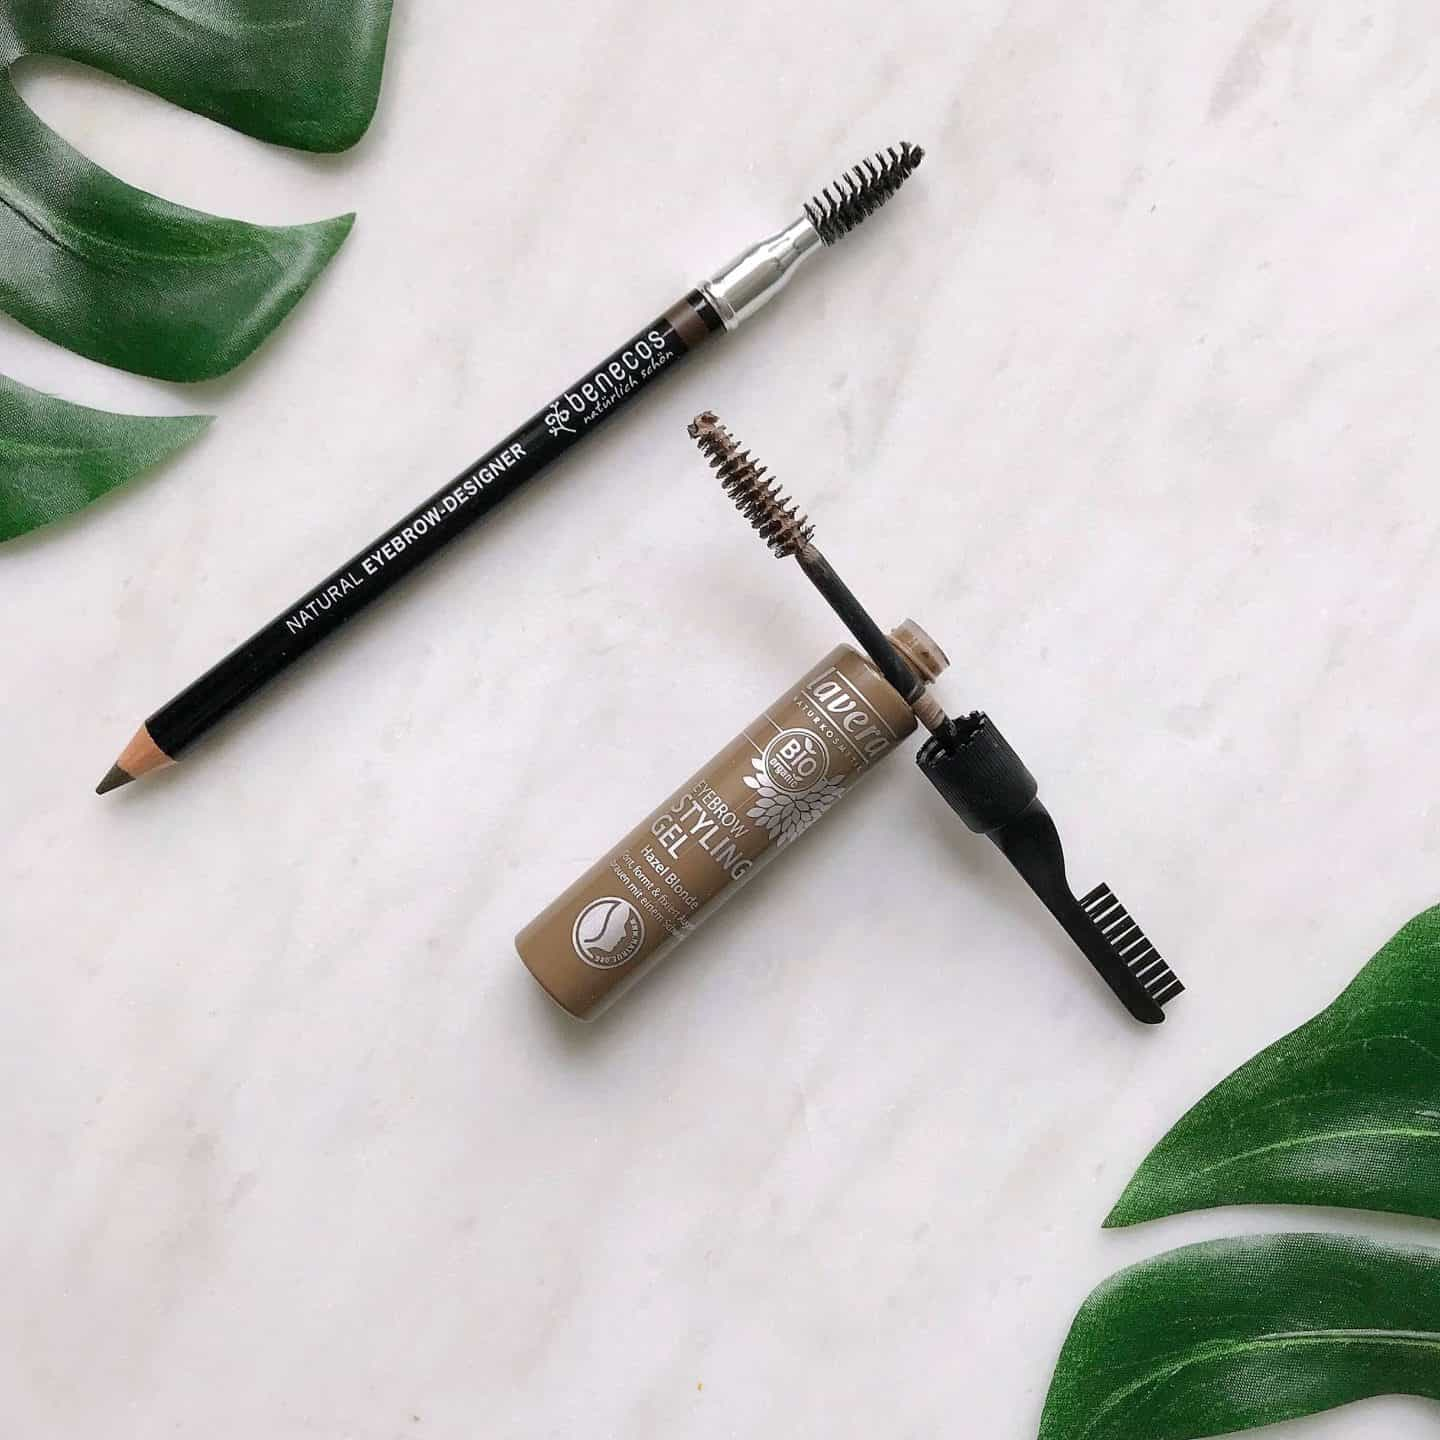 Benecos Natural Eyebrow Designer Pencil in Brown and Lavera Eyebrow Styling Gel help you fake fuller eyebrows